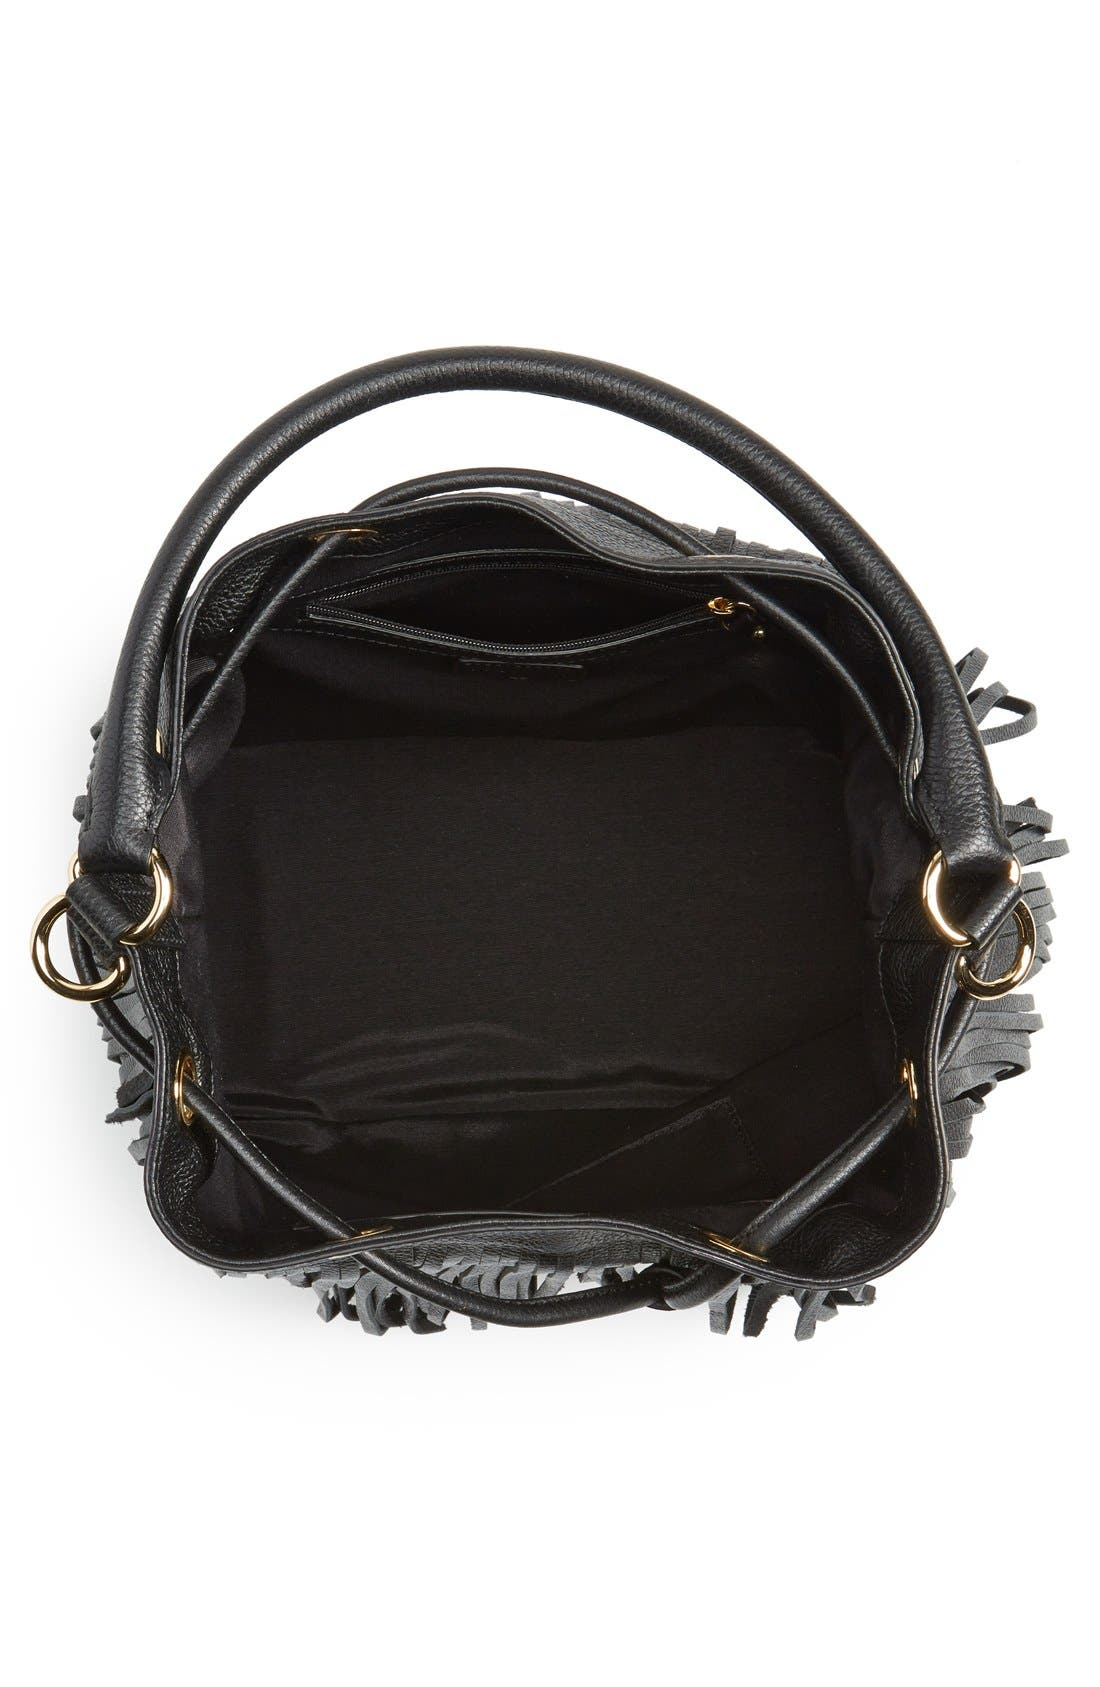 MILLY, 'Essex' Fringed Leather Bucket Bag, Alternate thumbnail 5, color, 001